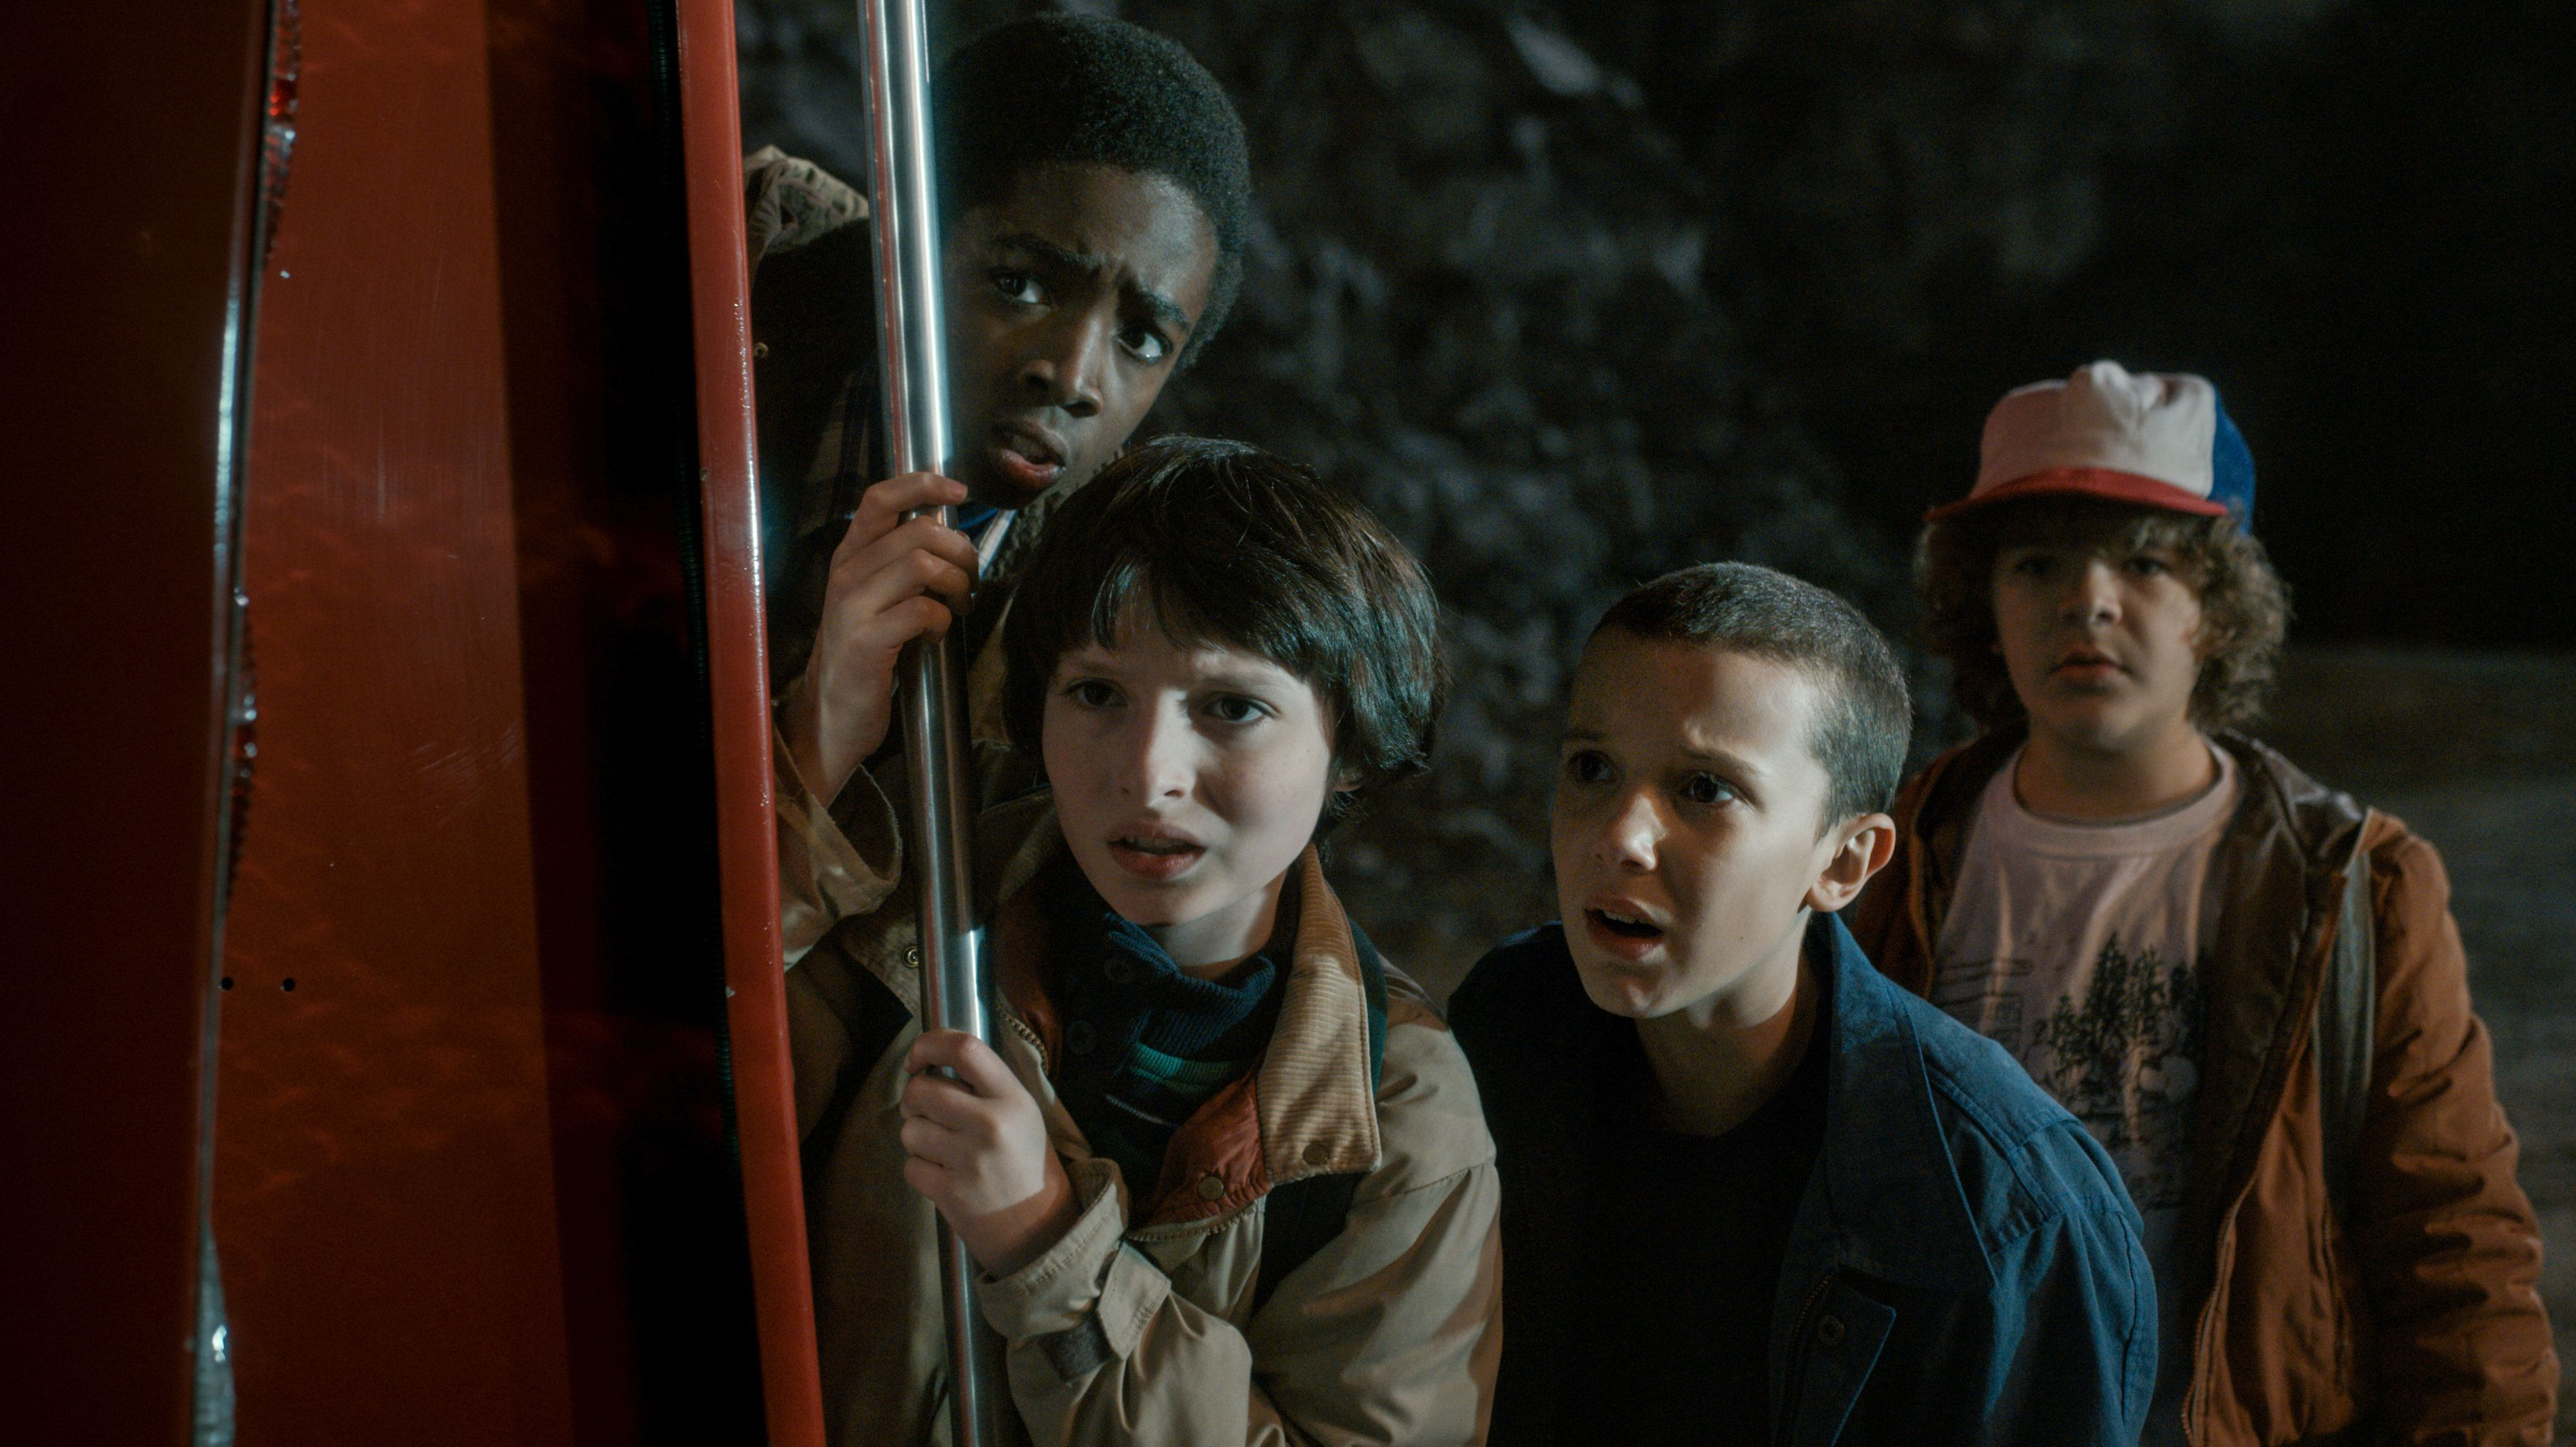 Good news because Stranger Things Season 2 will arrive sooner than expected